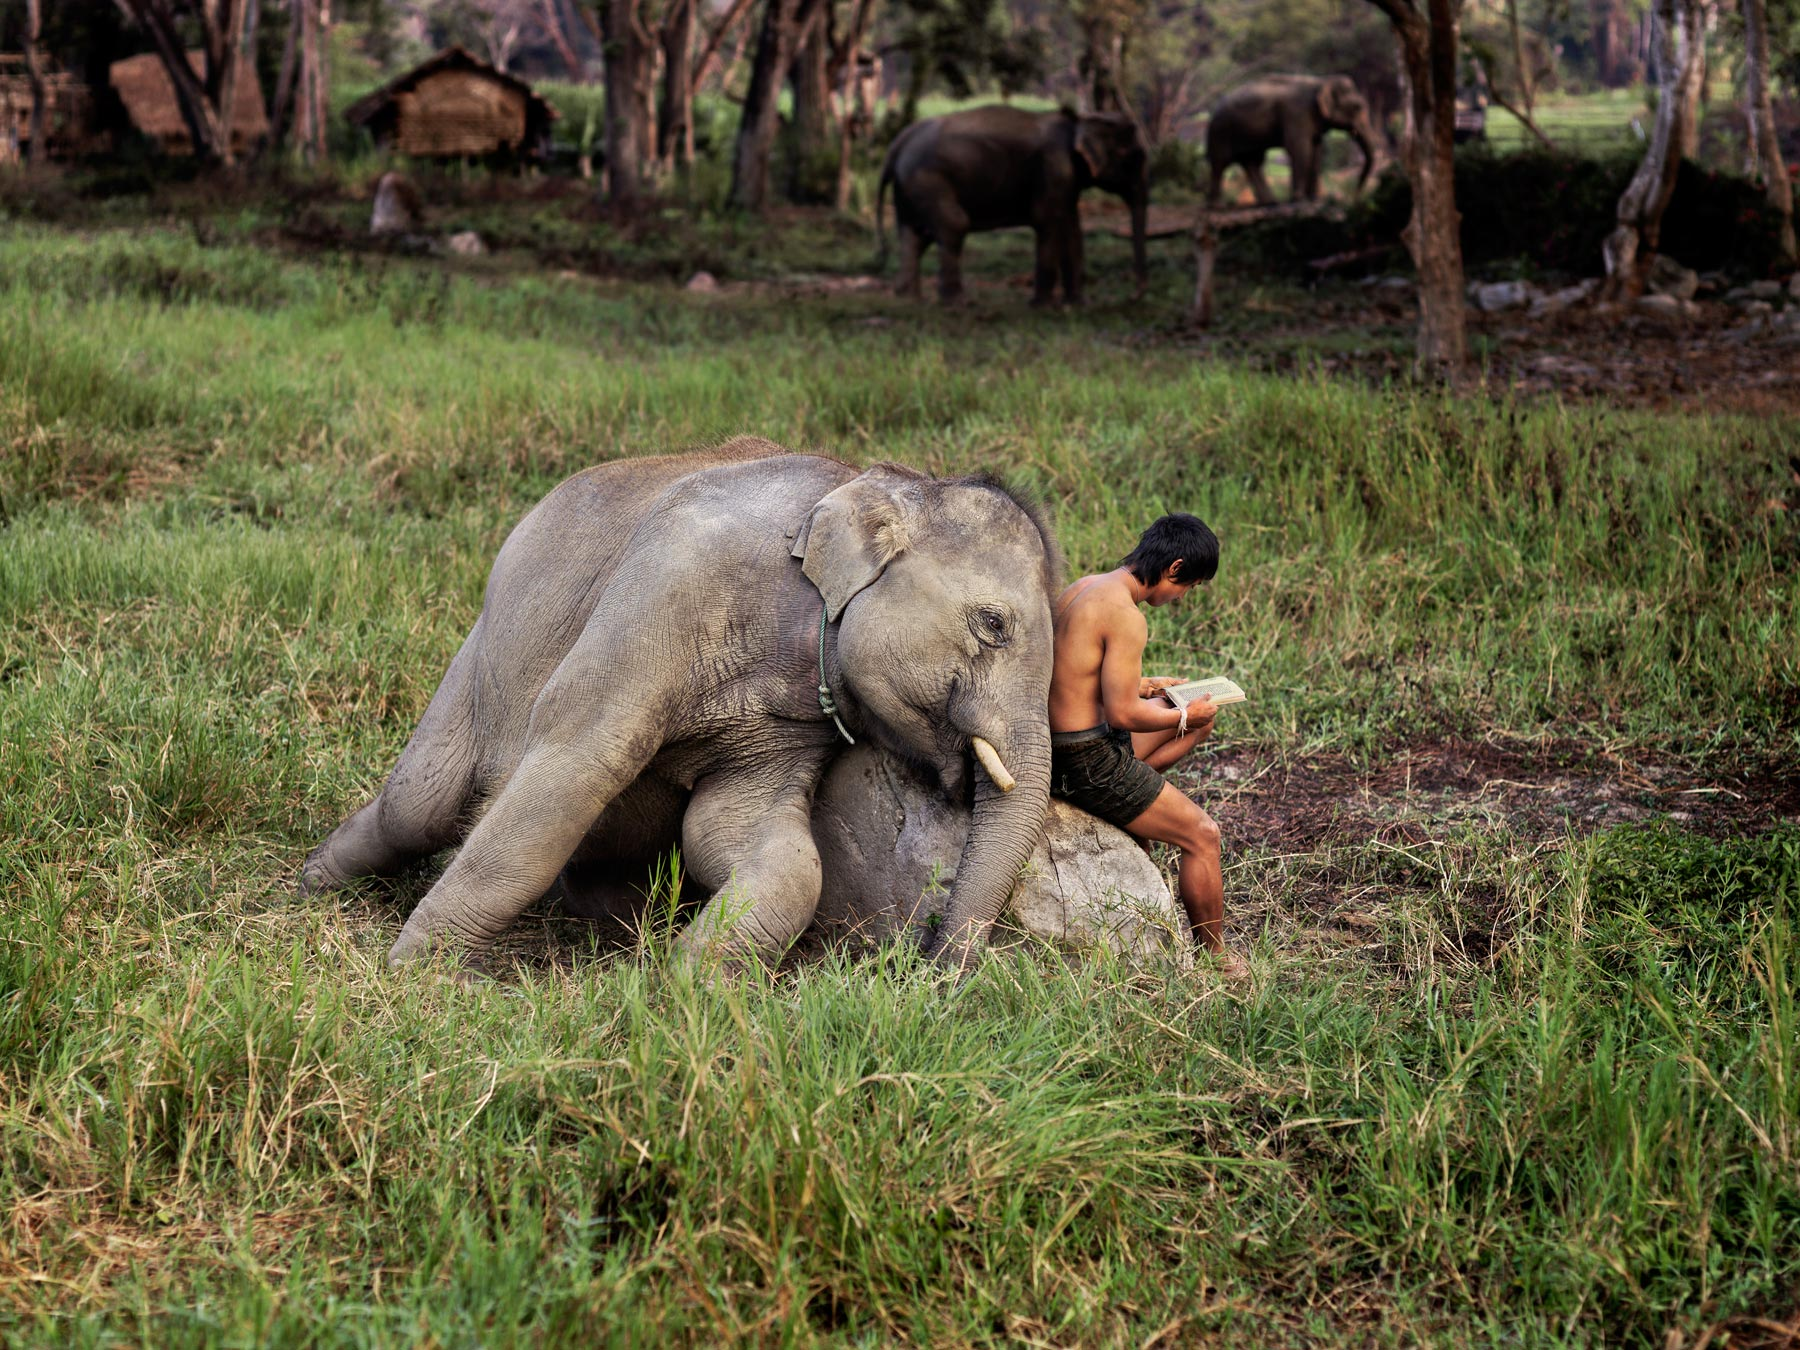 Steve McCurry photo from Thailand.